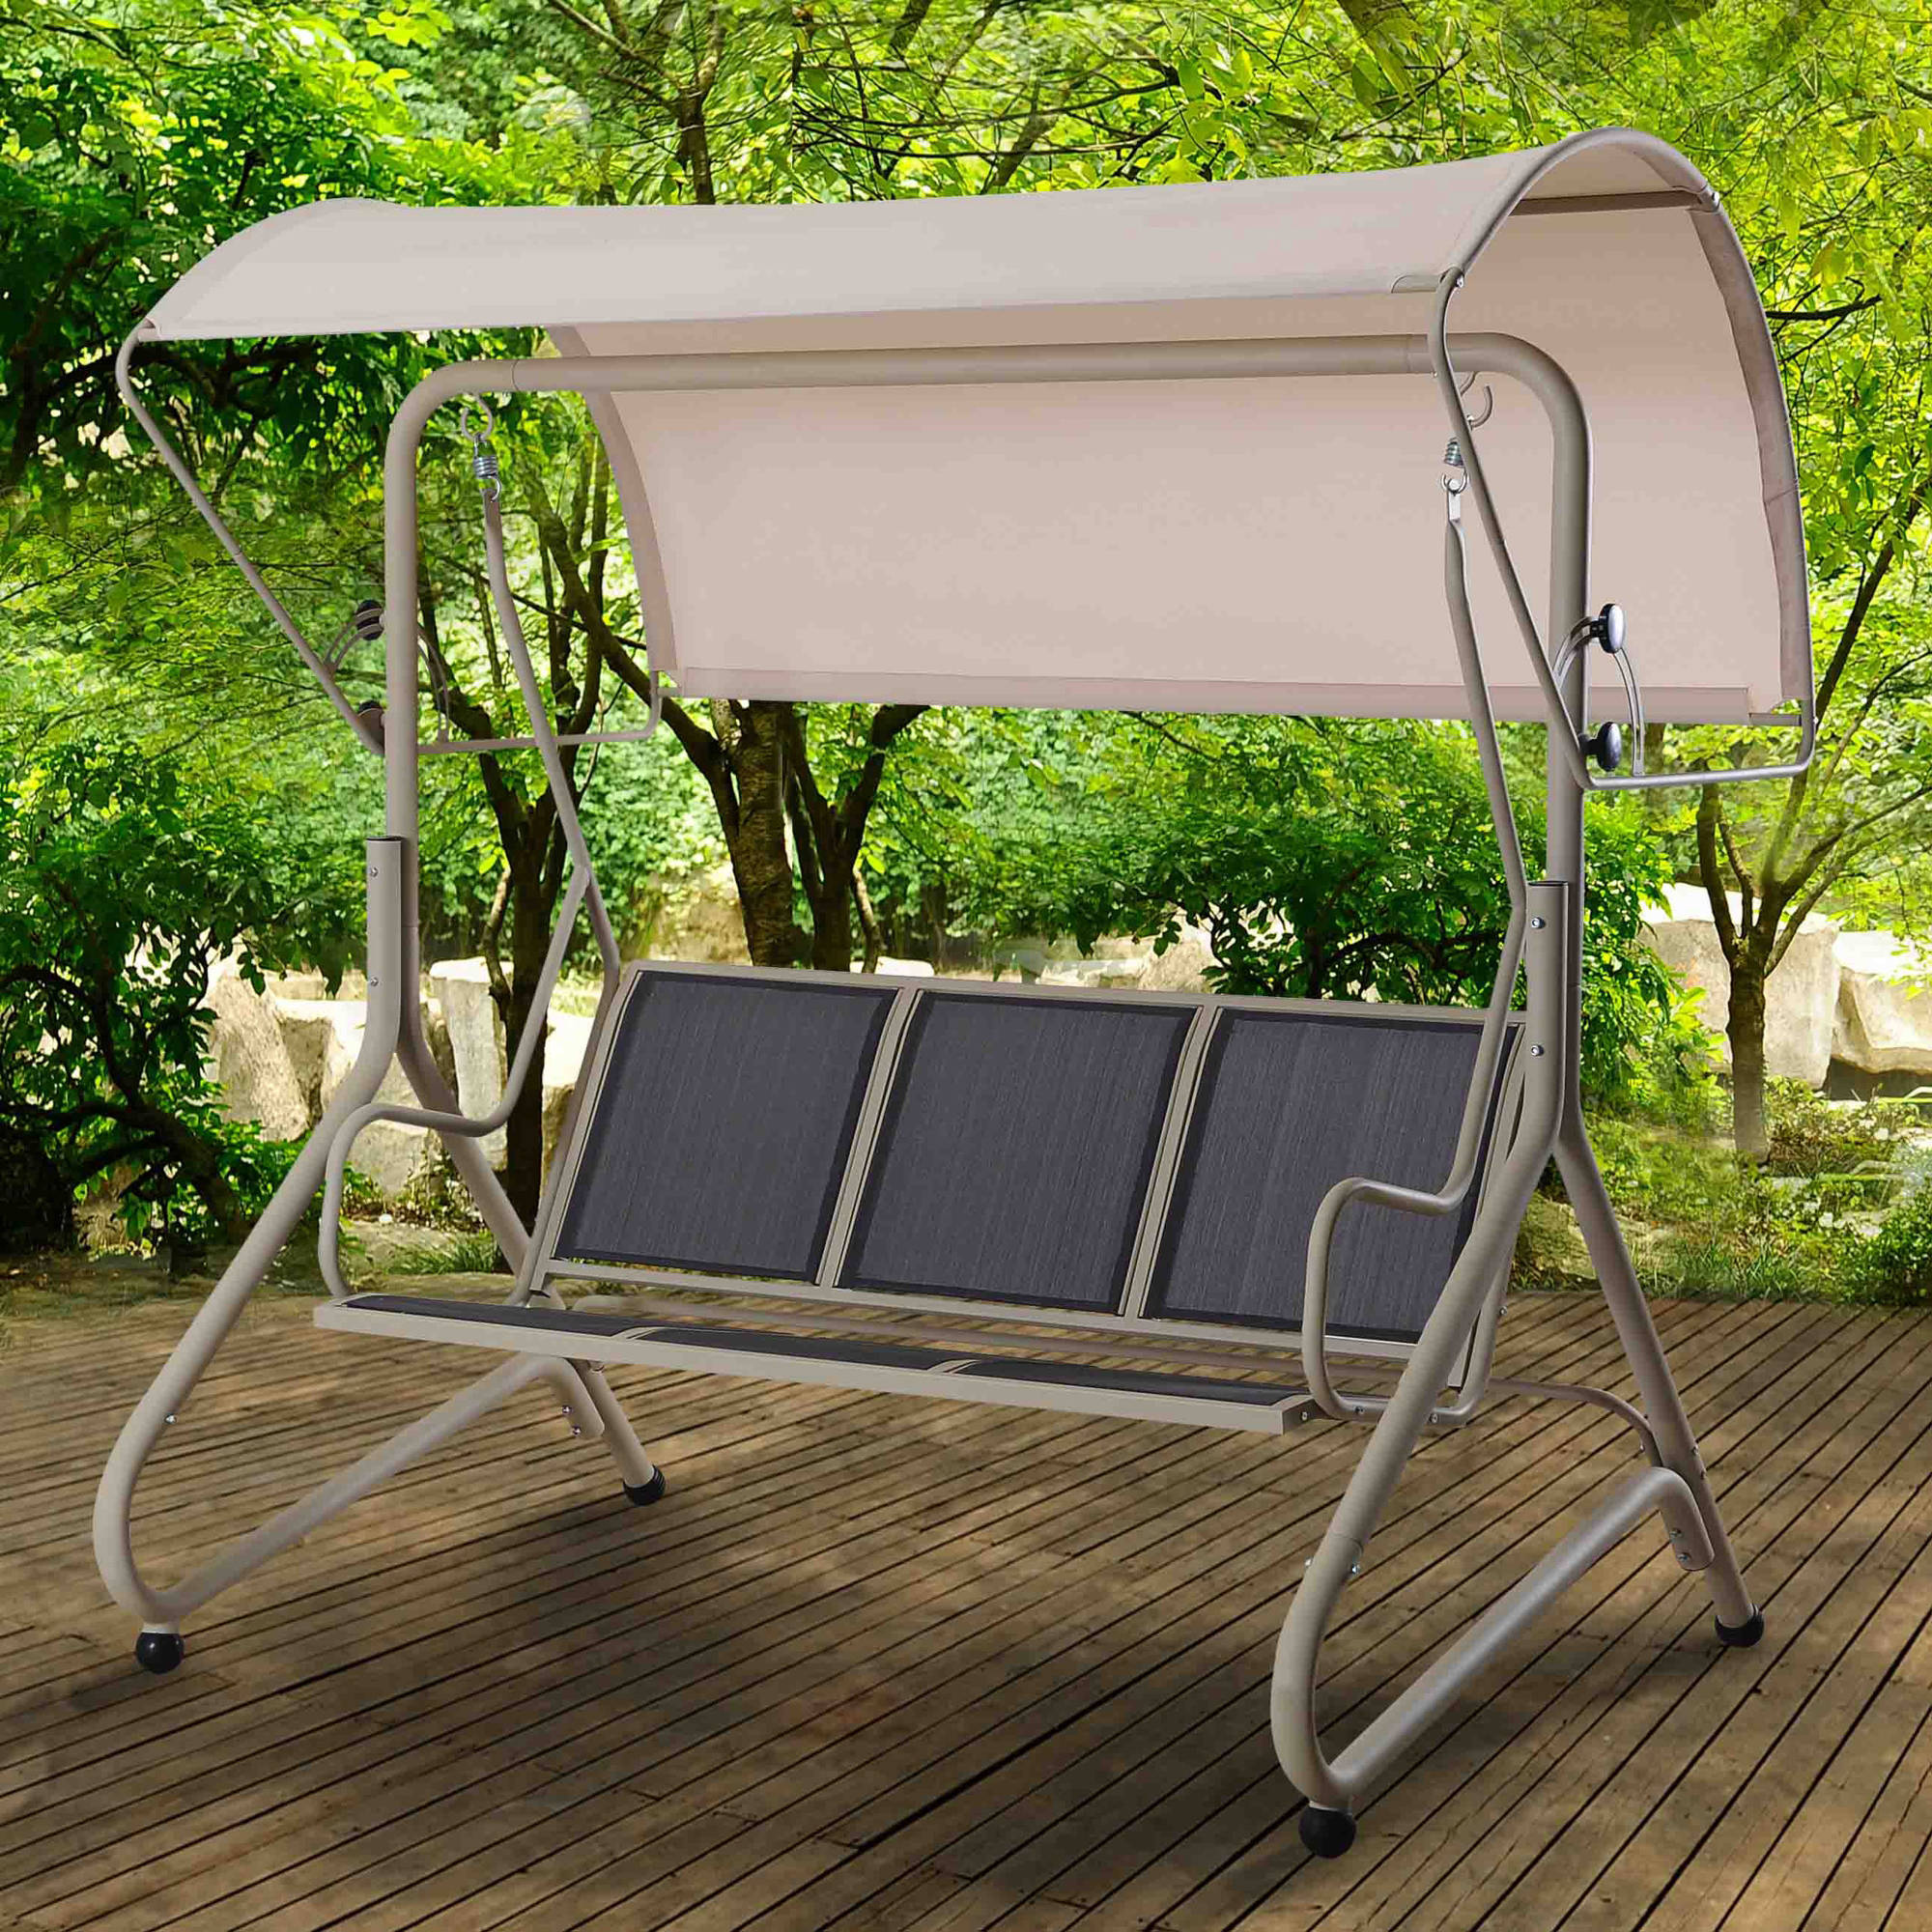 "Sunjoy 110205012 Sunrise Steel Swing with Canopy, 77"" x 57"" x 81"""